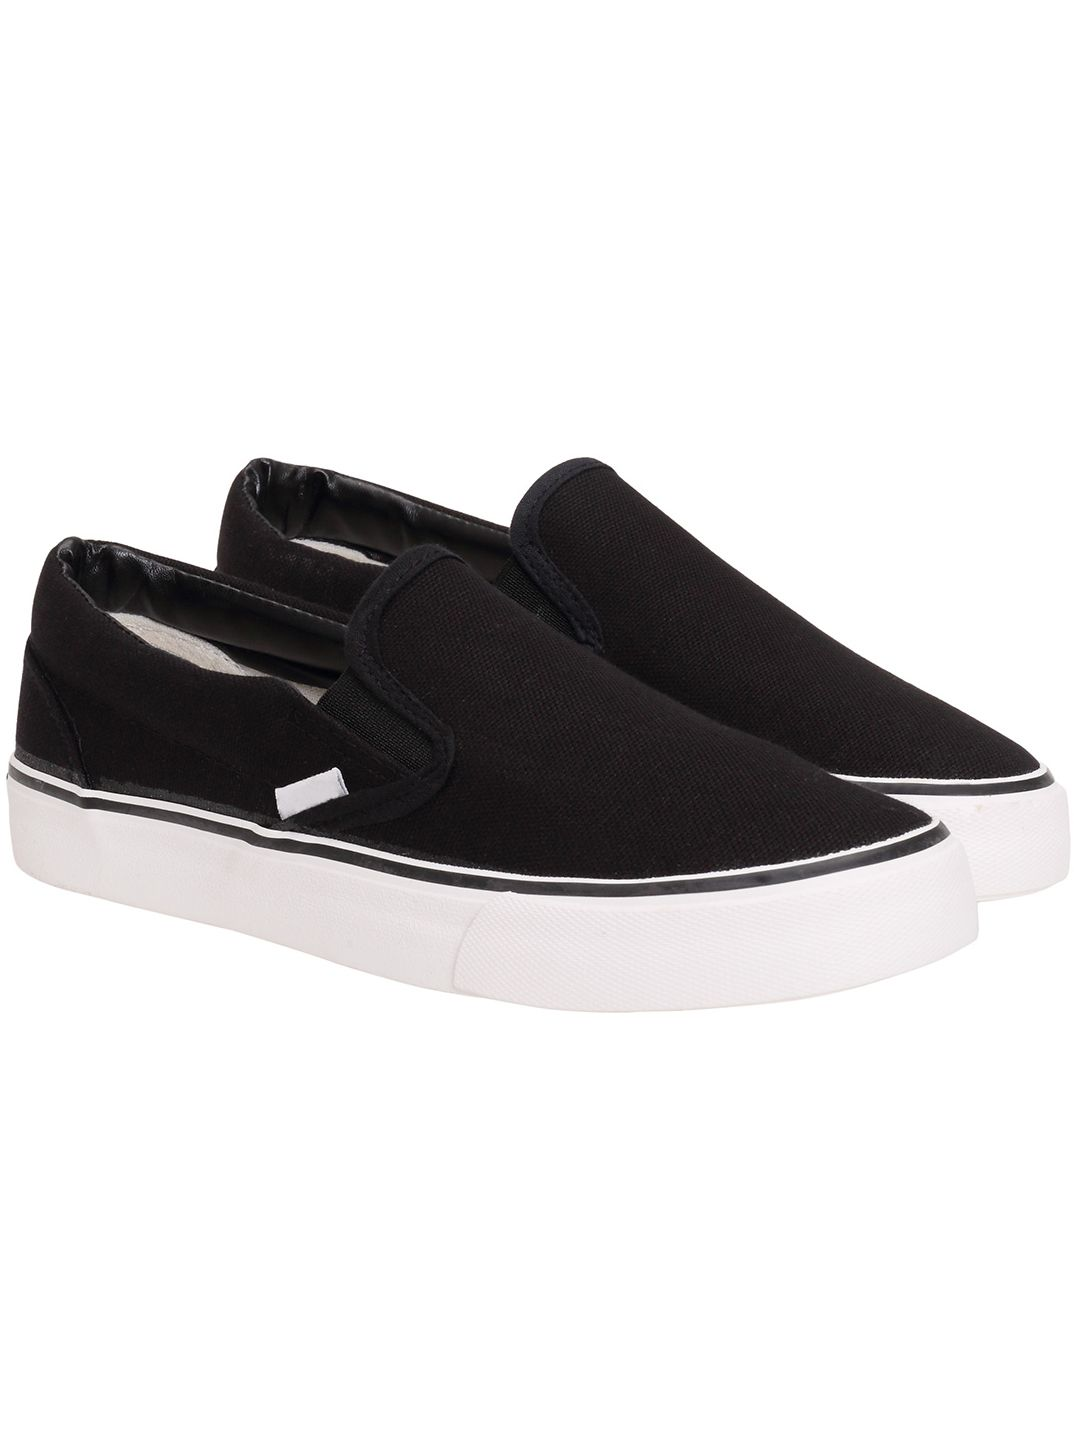 Shop SheIn negro Thick soled Casual Flats online. SheIn Shop offers negro Thick a4ae04